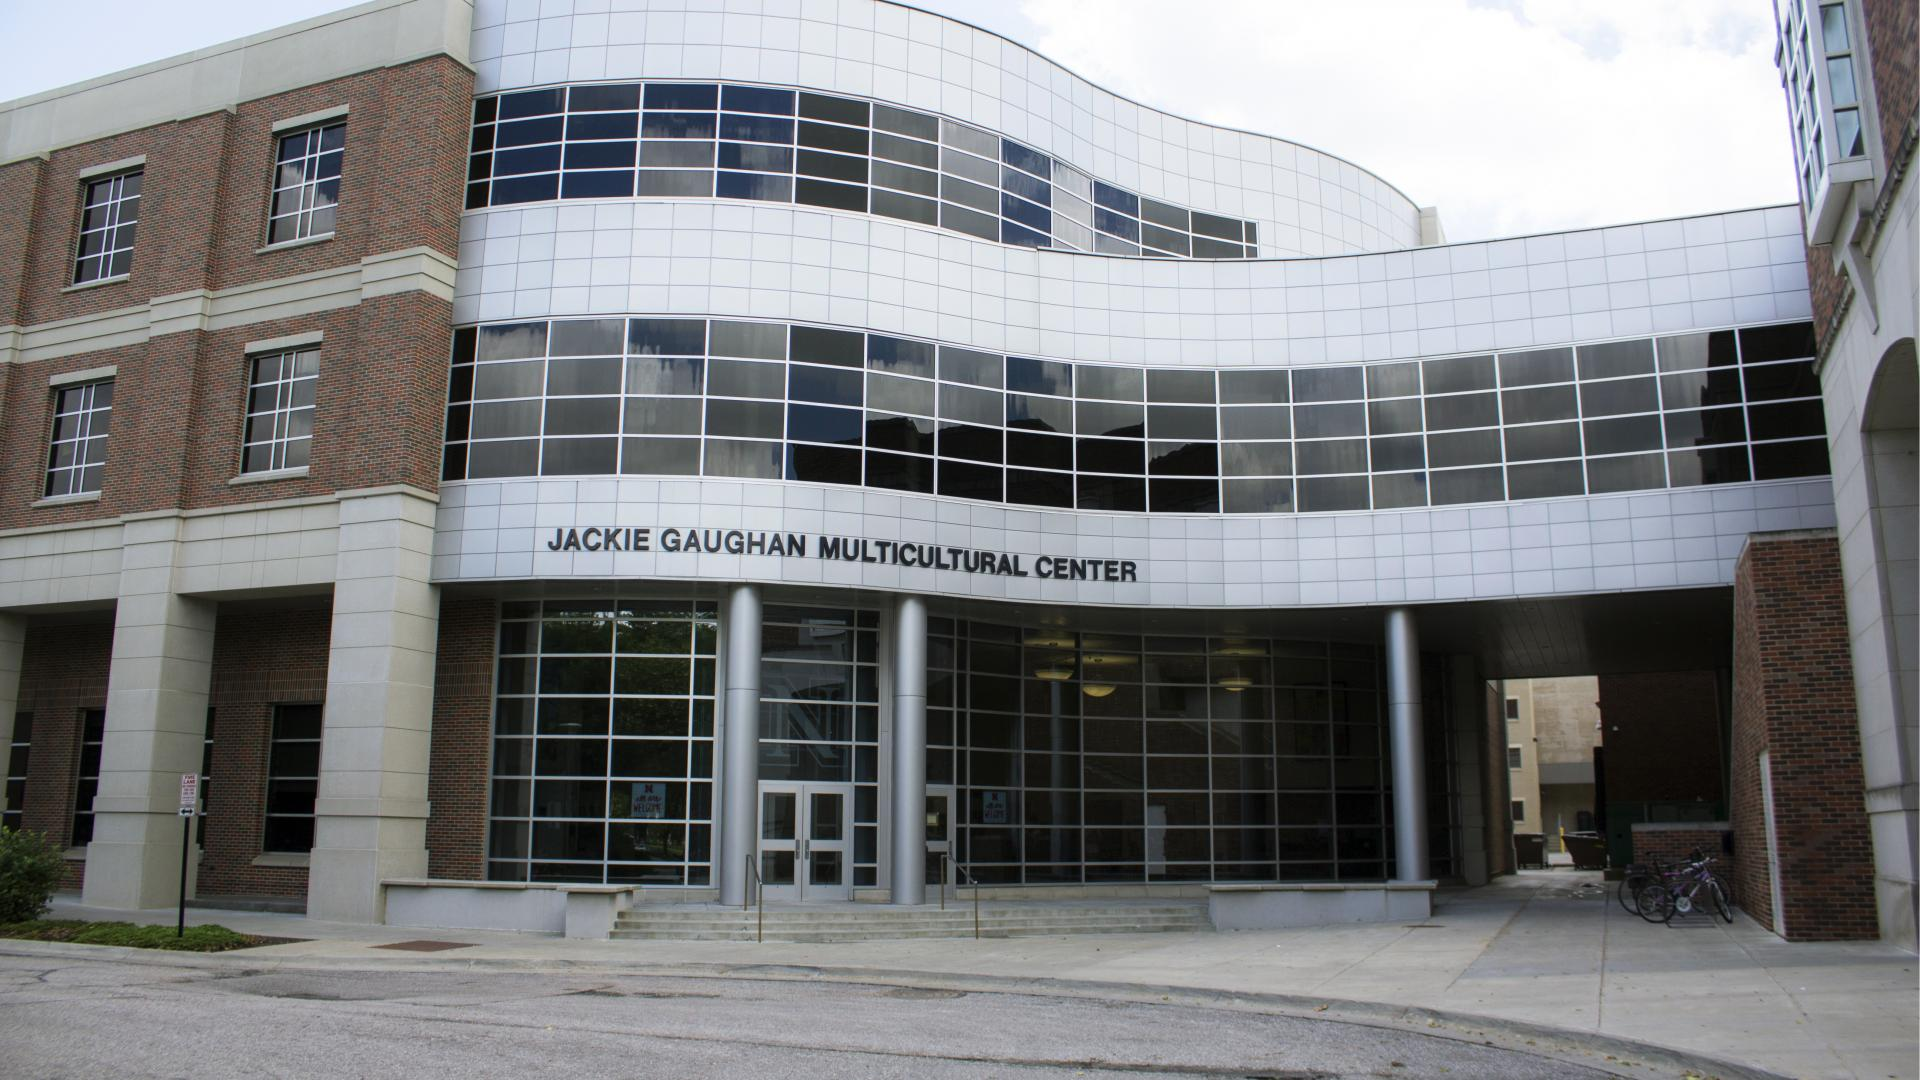 The Jackie Gaughan Multicultural Center